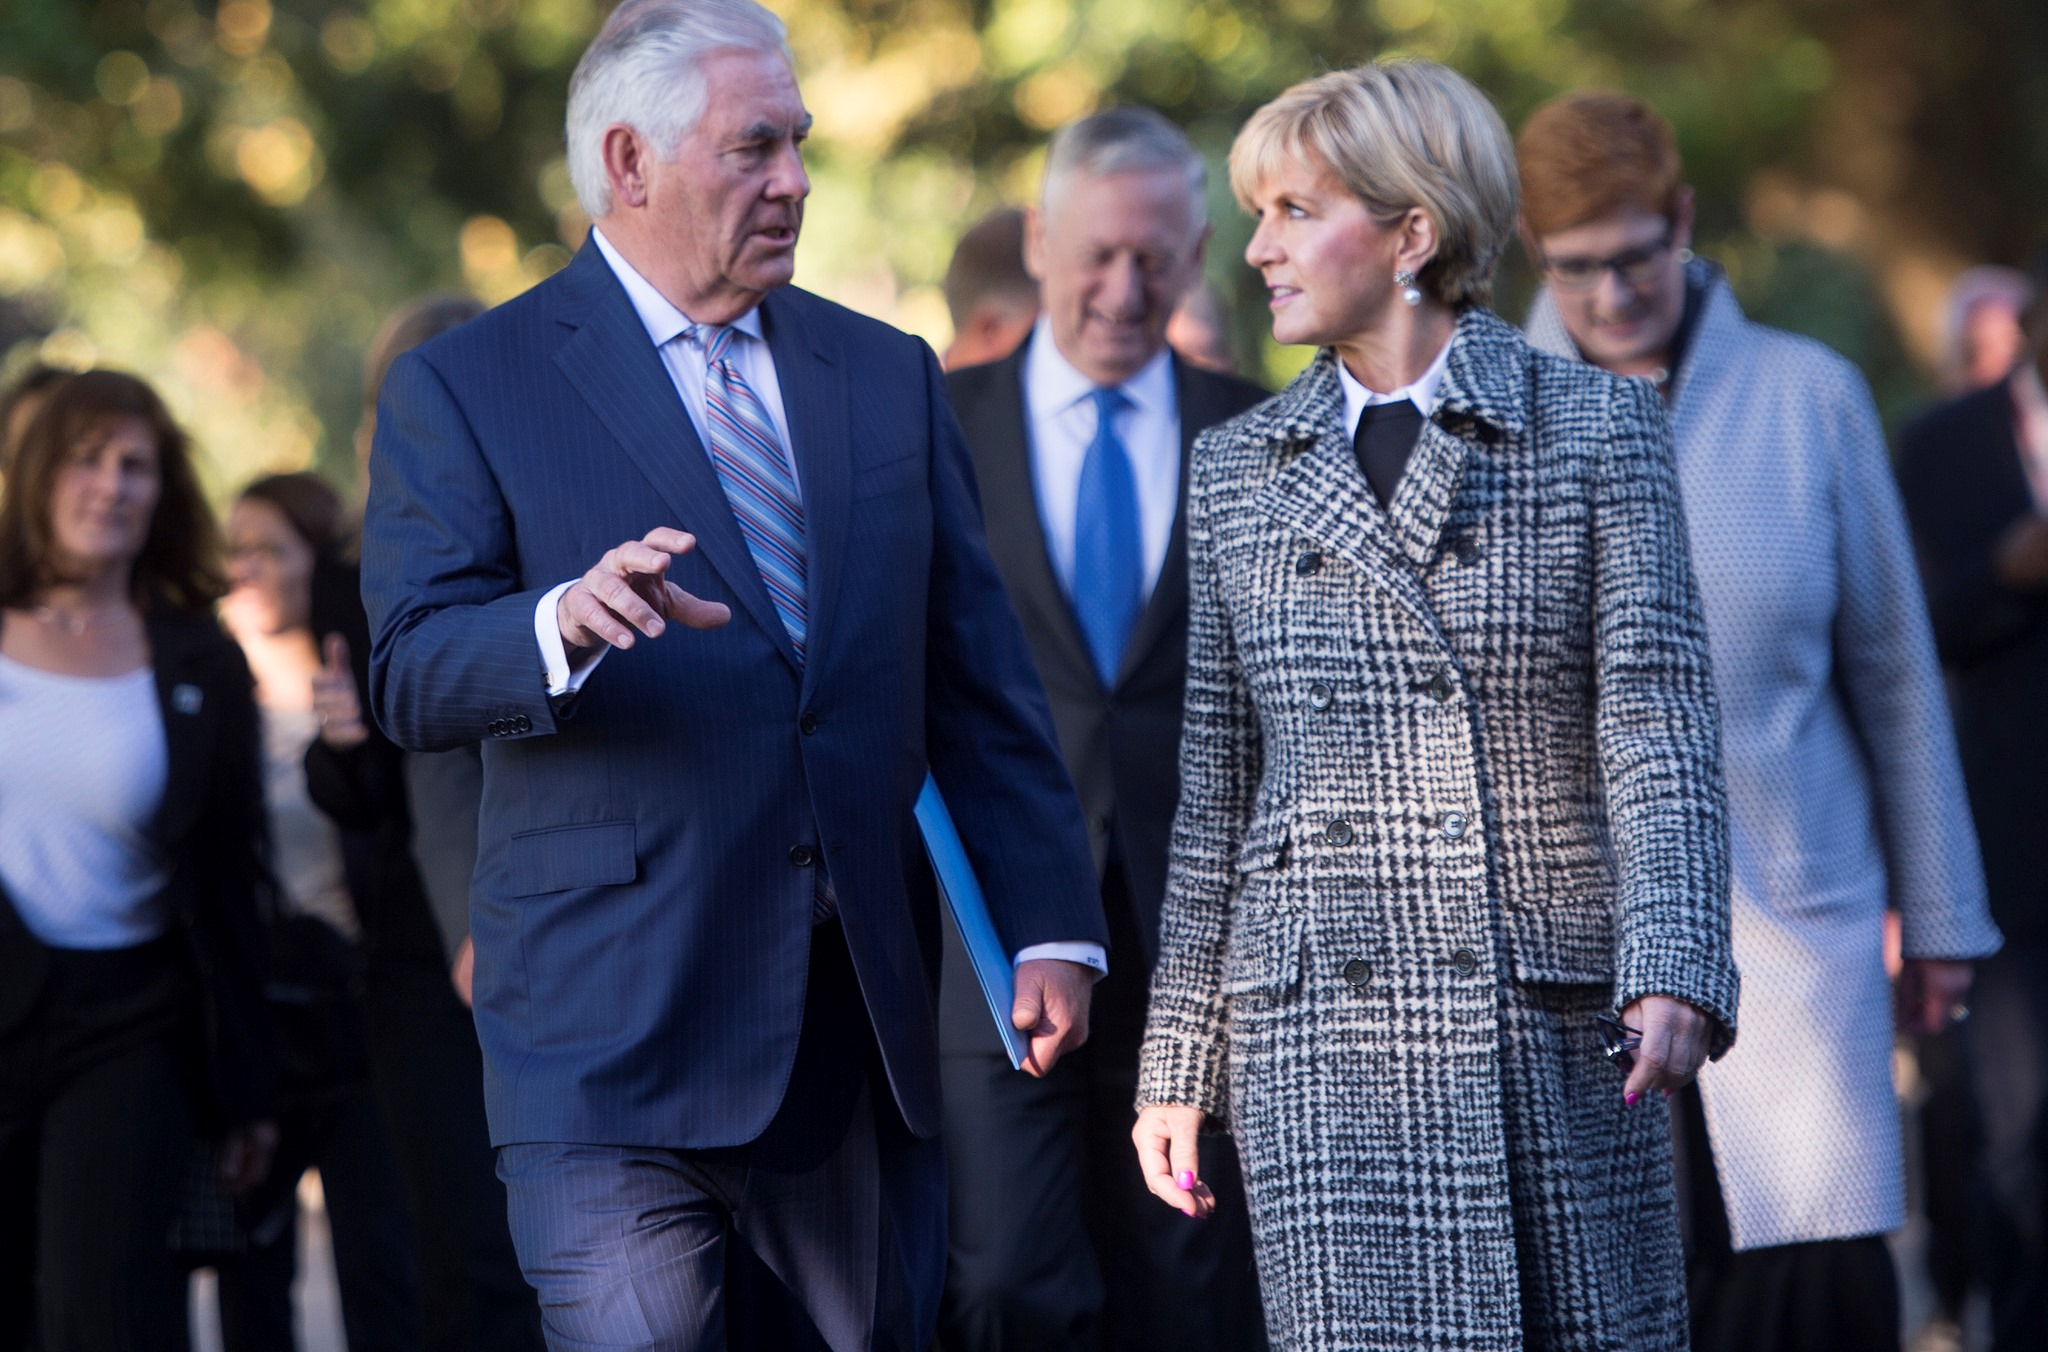 Foreign Minister Julie Bishop with US Secreaty of State Rex Tillerson at AUSMIN, June 2017. (Flickr/Chairman of the Joint Chiefs)